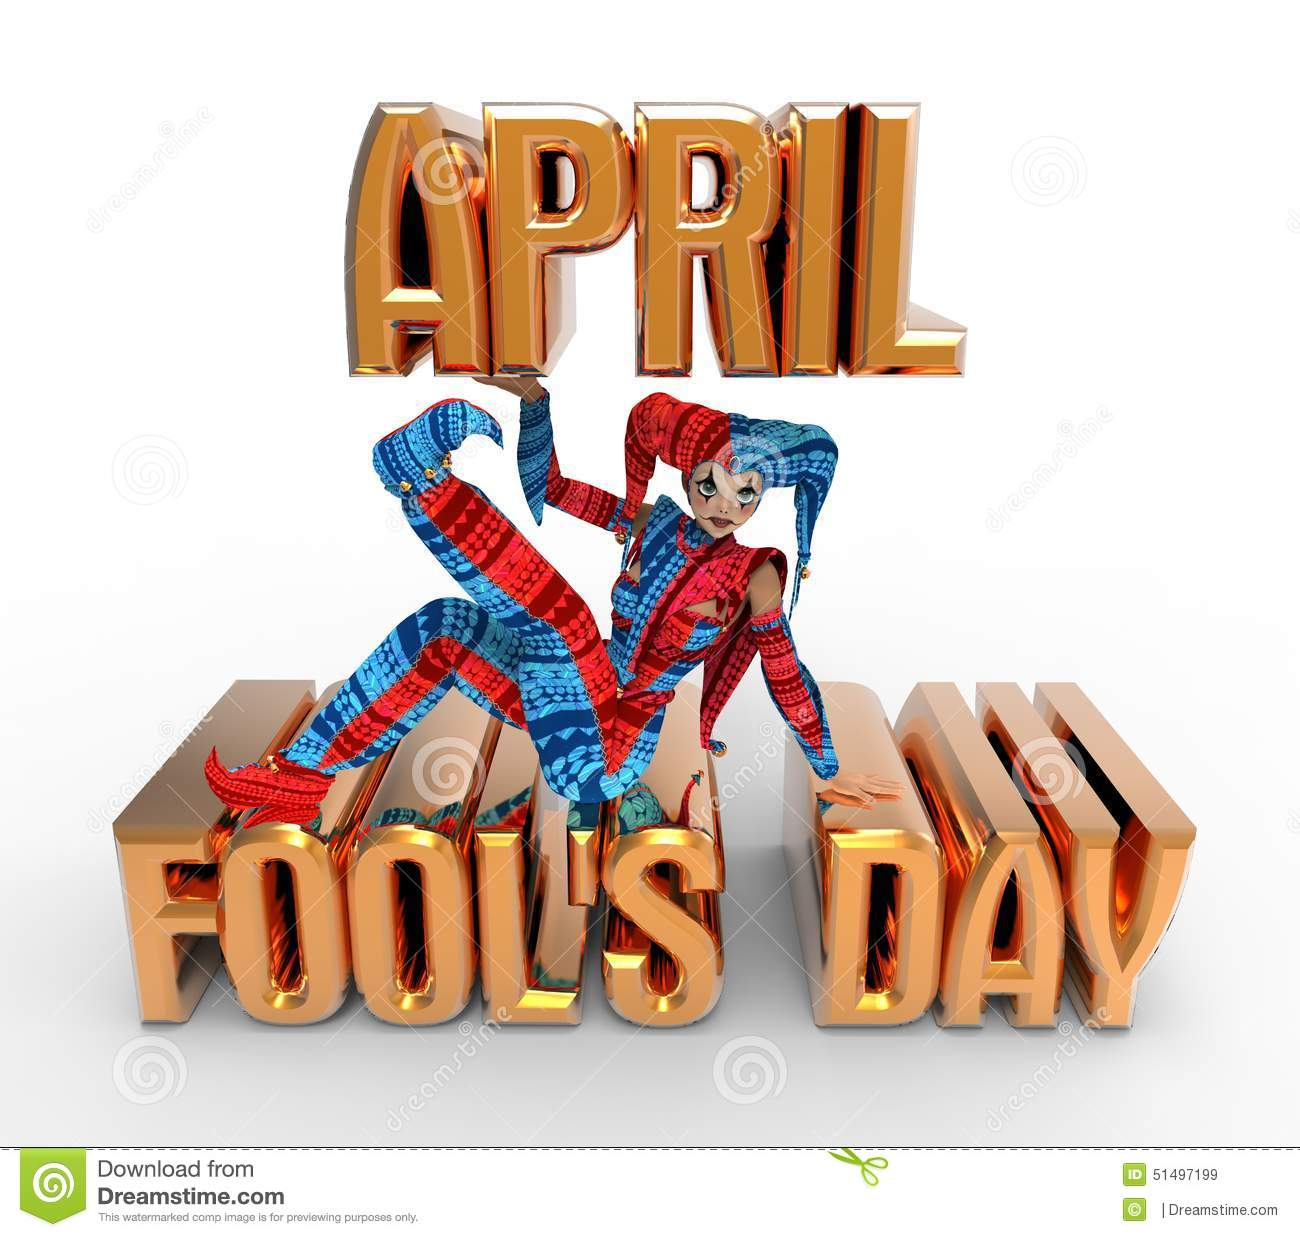 April Fool's Day Clipart stock illustration. Illustration of fool.